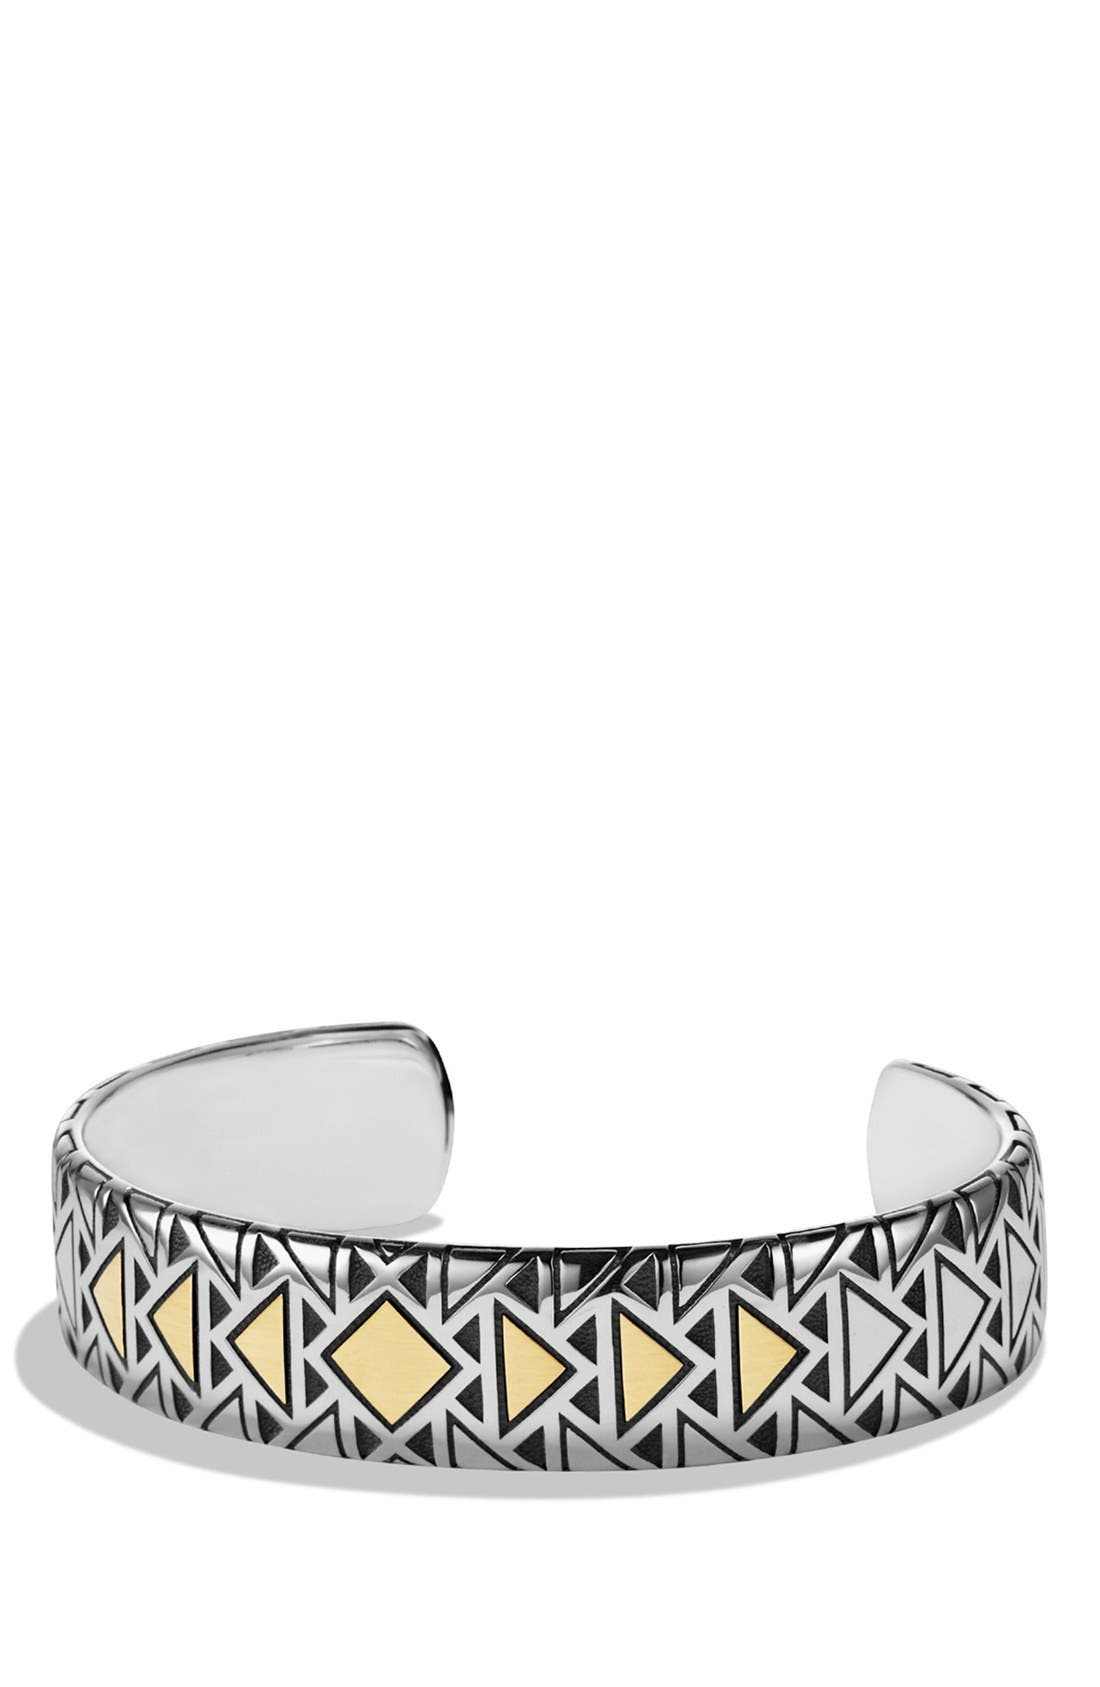 Alternate Image 1 Selected - David Yurman 'Frontier' Cuff Bracelet with 18K Gold